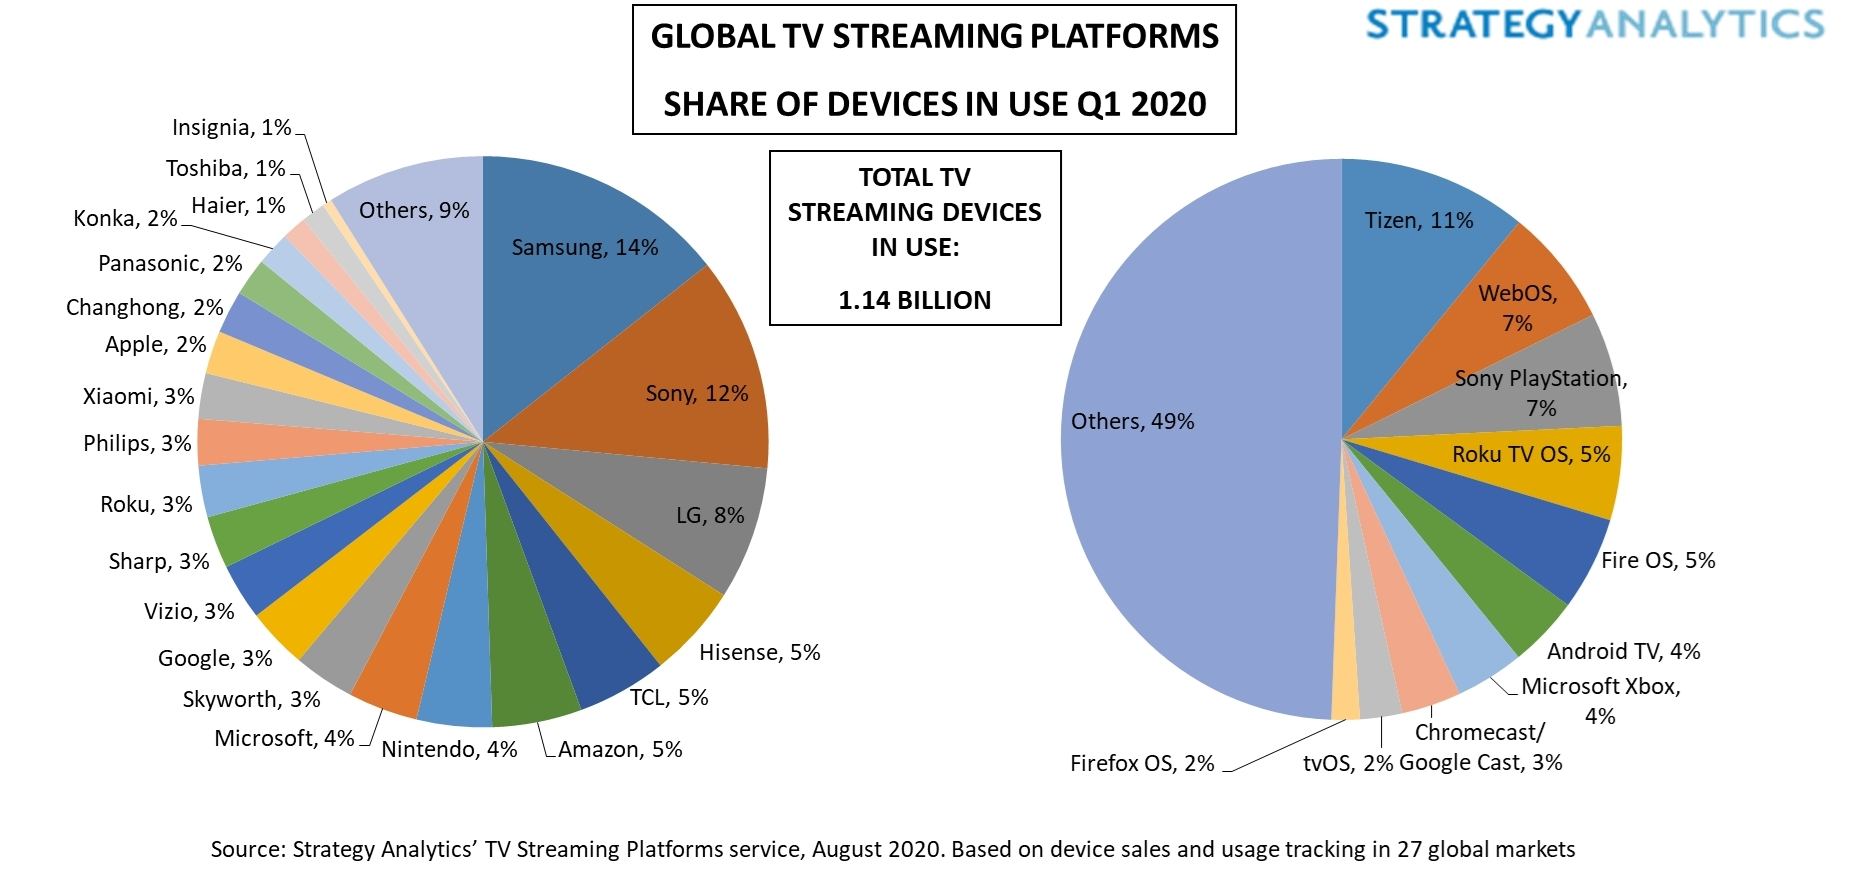 Samsung Leads As Global TV Streaming Device Population Reaches 1.1 Billion